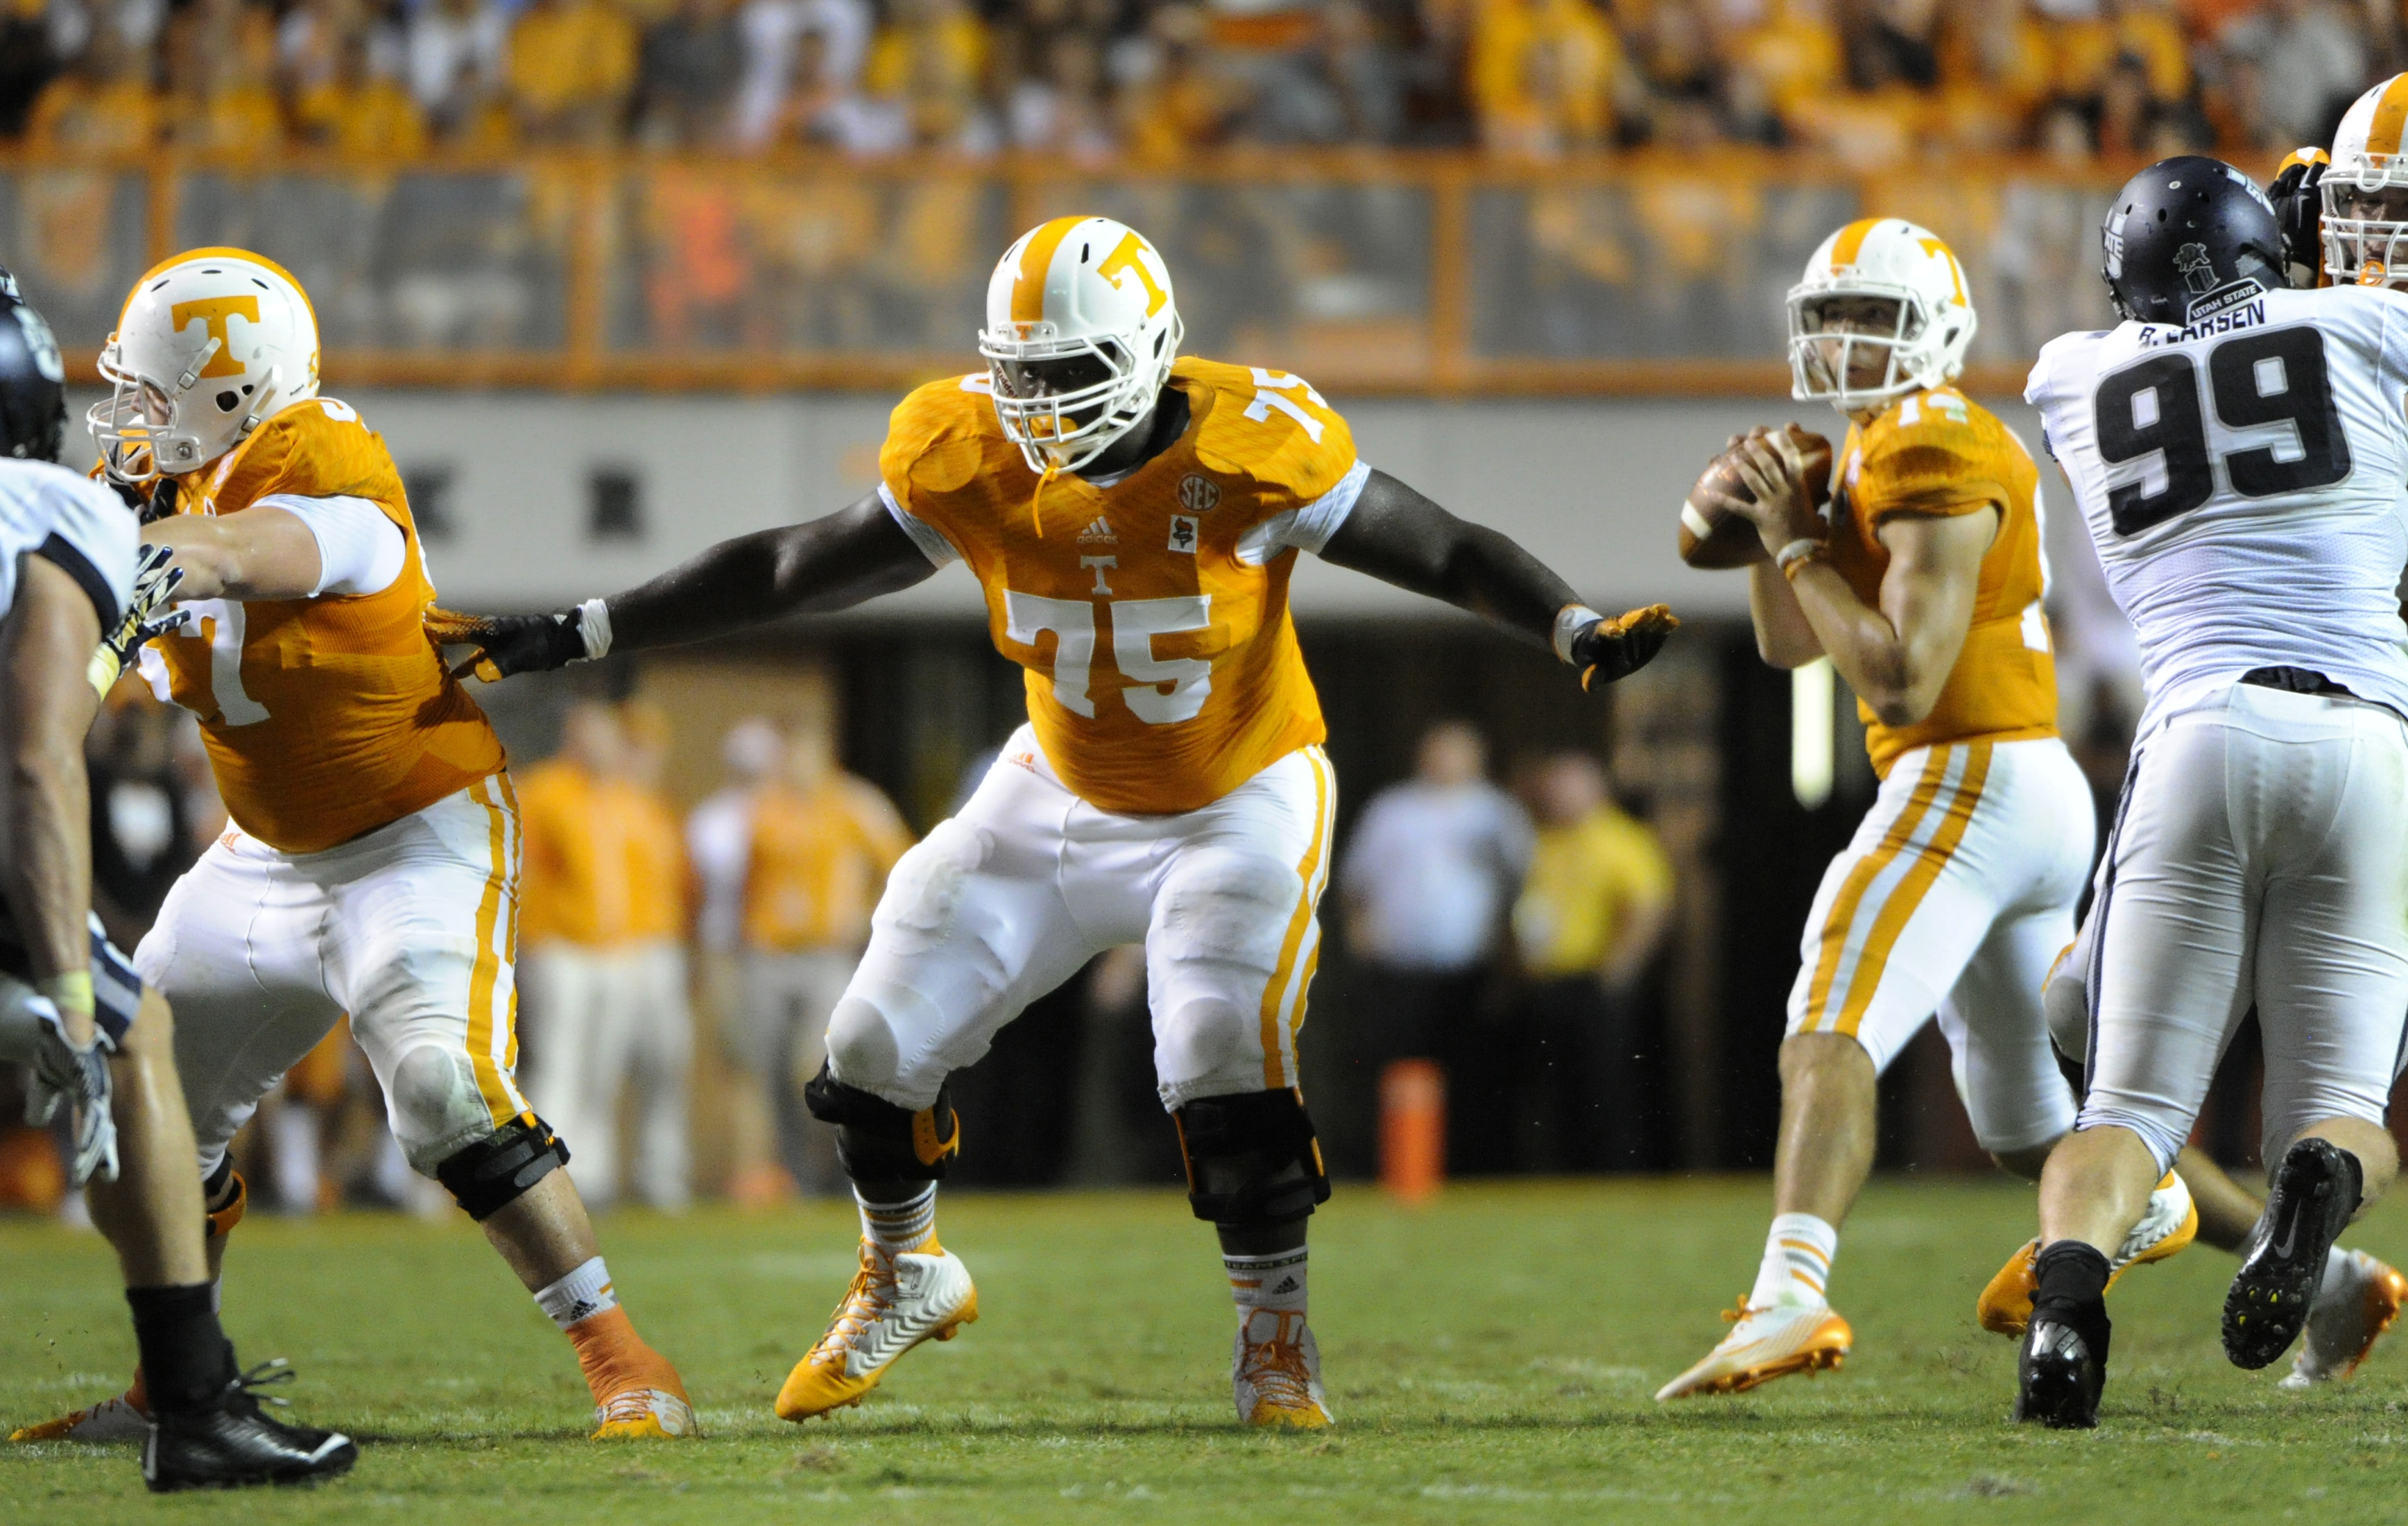 In this Aug. 31, 2014, photo, Tennessee offensive lineman Marcus Jackson (75) provides pass protection during a NCAA football game against Utah State in Knoxville, Tenn. Jackson will undergo potential season-ending surgery, leaving the Volunteers without